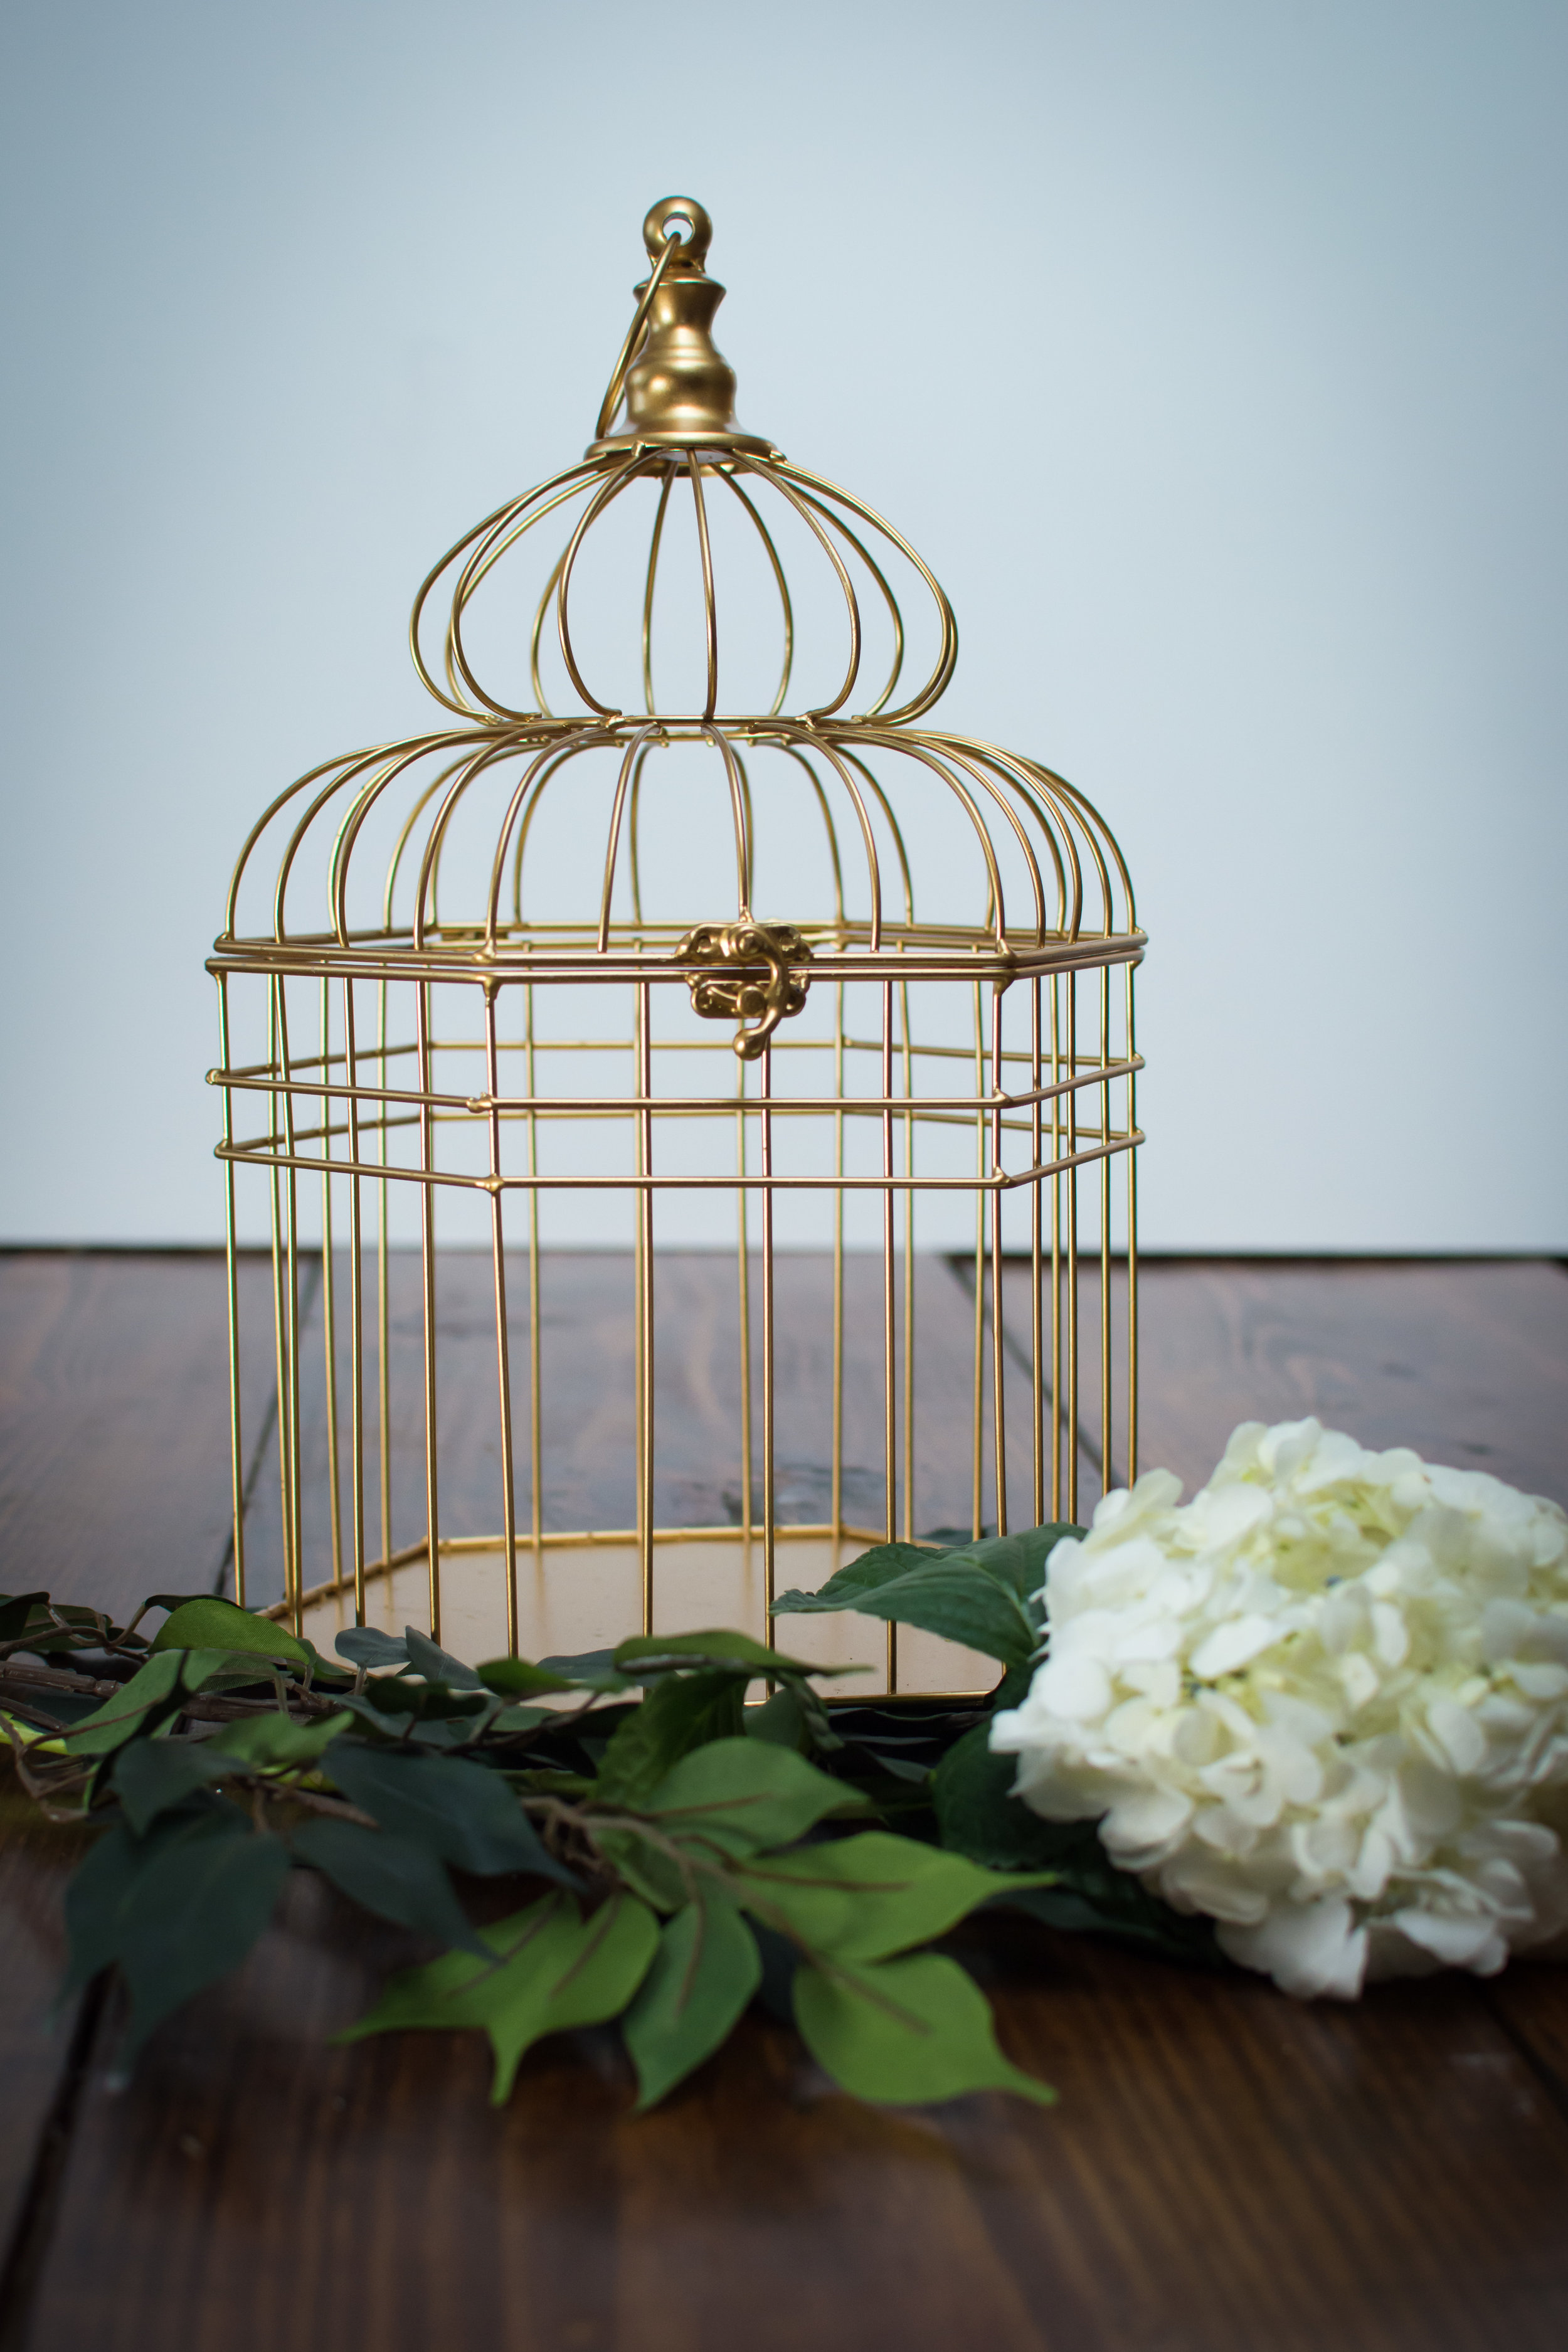 Gold birdcage   Price: $8.00  Inquire about quantity and availability